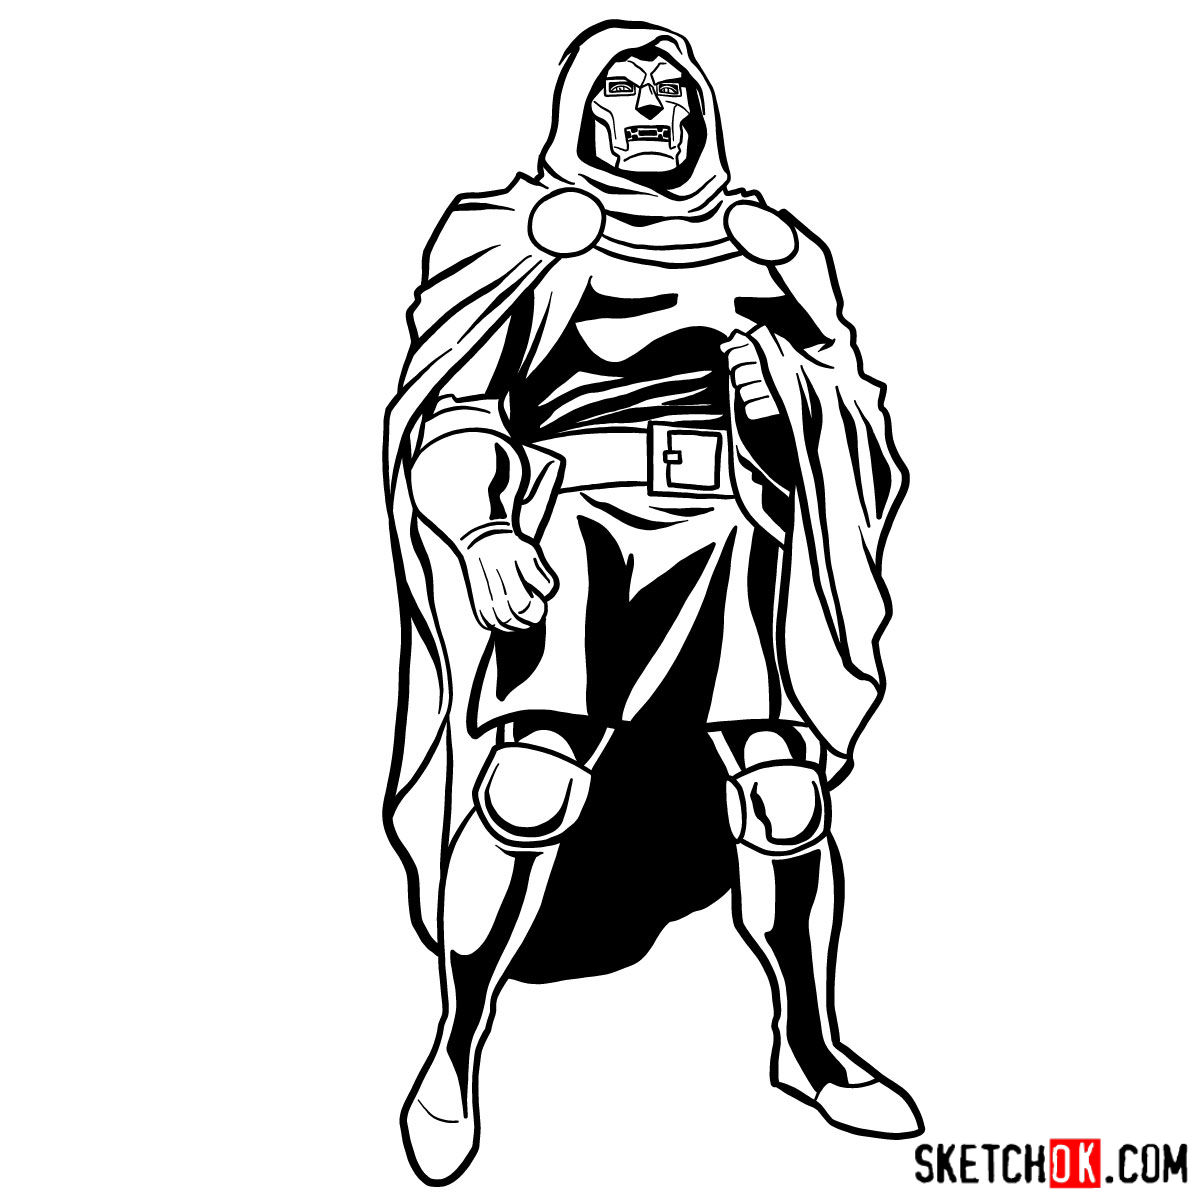 How to draw Doctor Doom, Marvel's supervillian - step 14